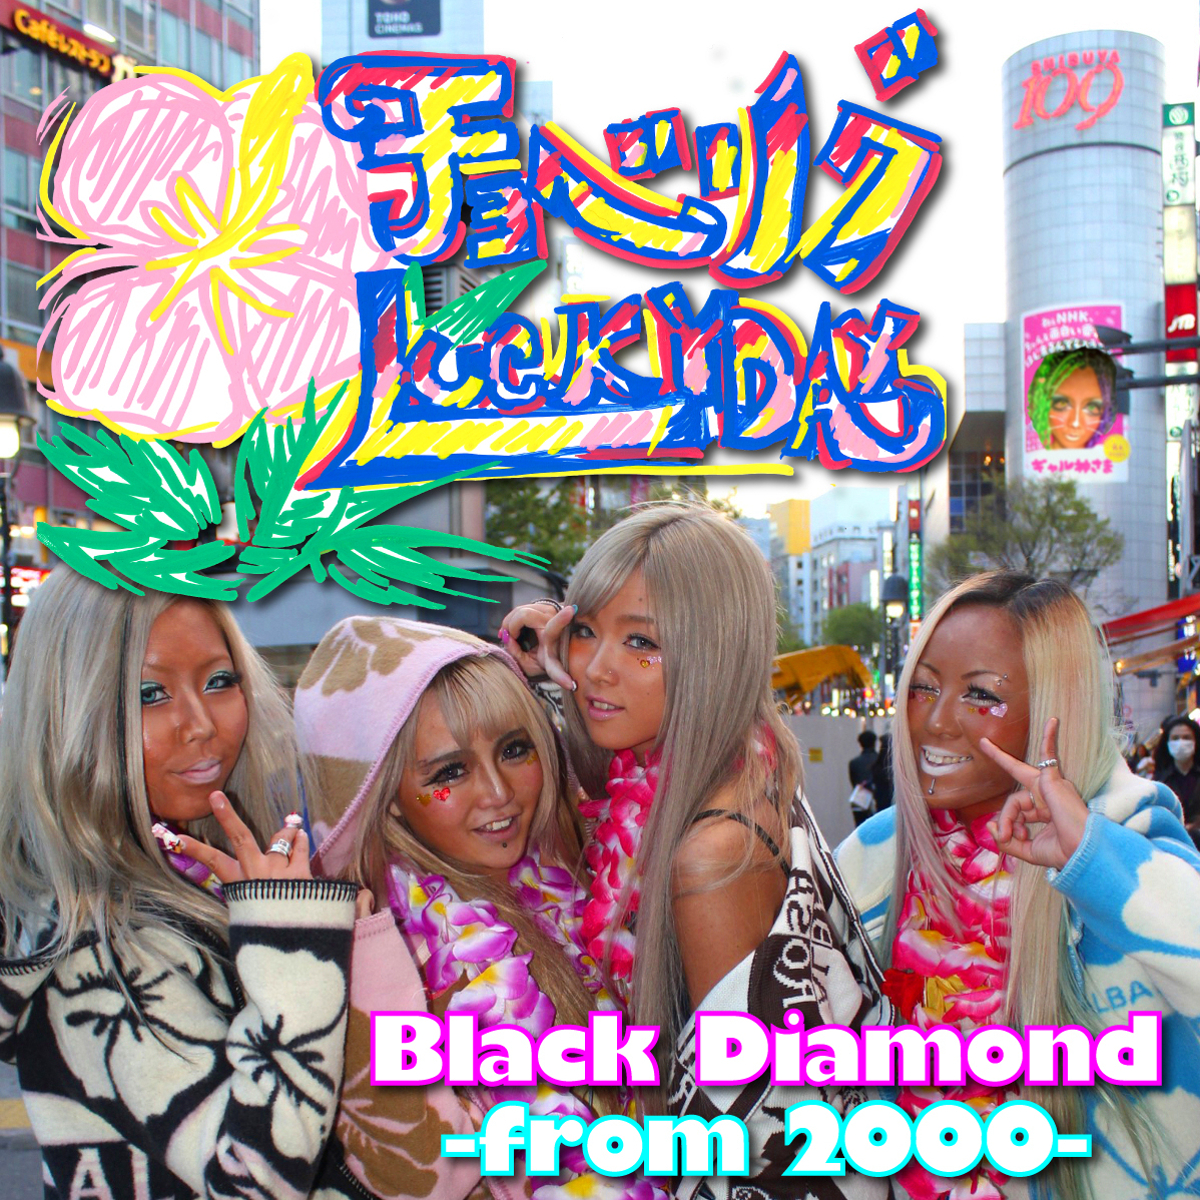 Black Diamond -from 2000- 初ワンマンLIVE!!